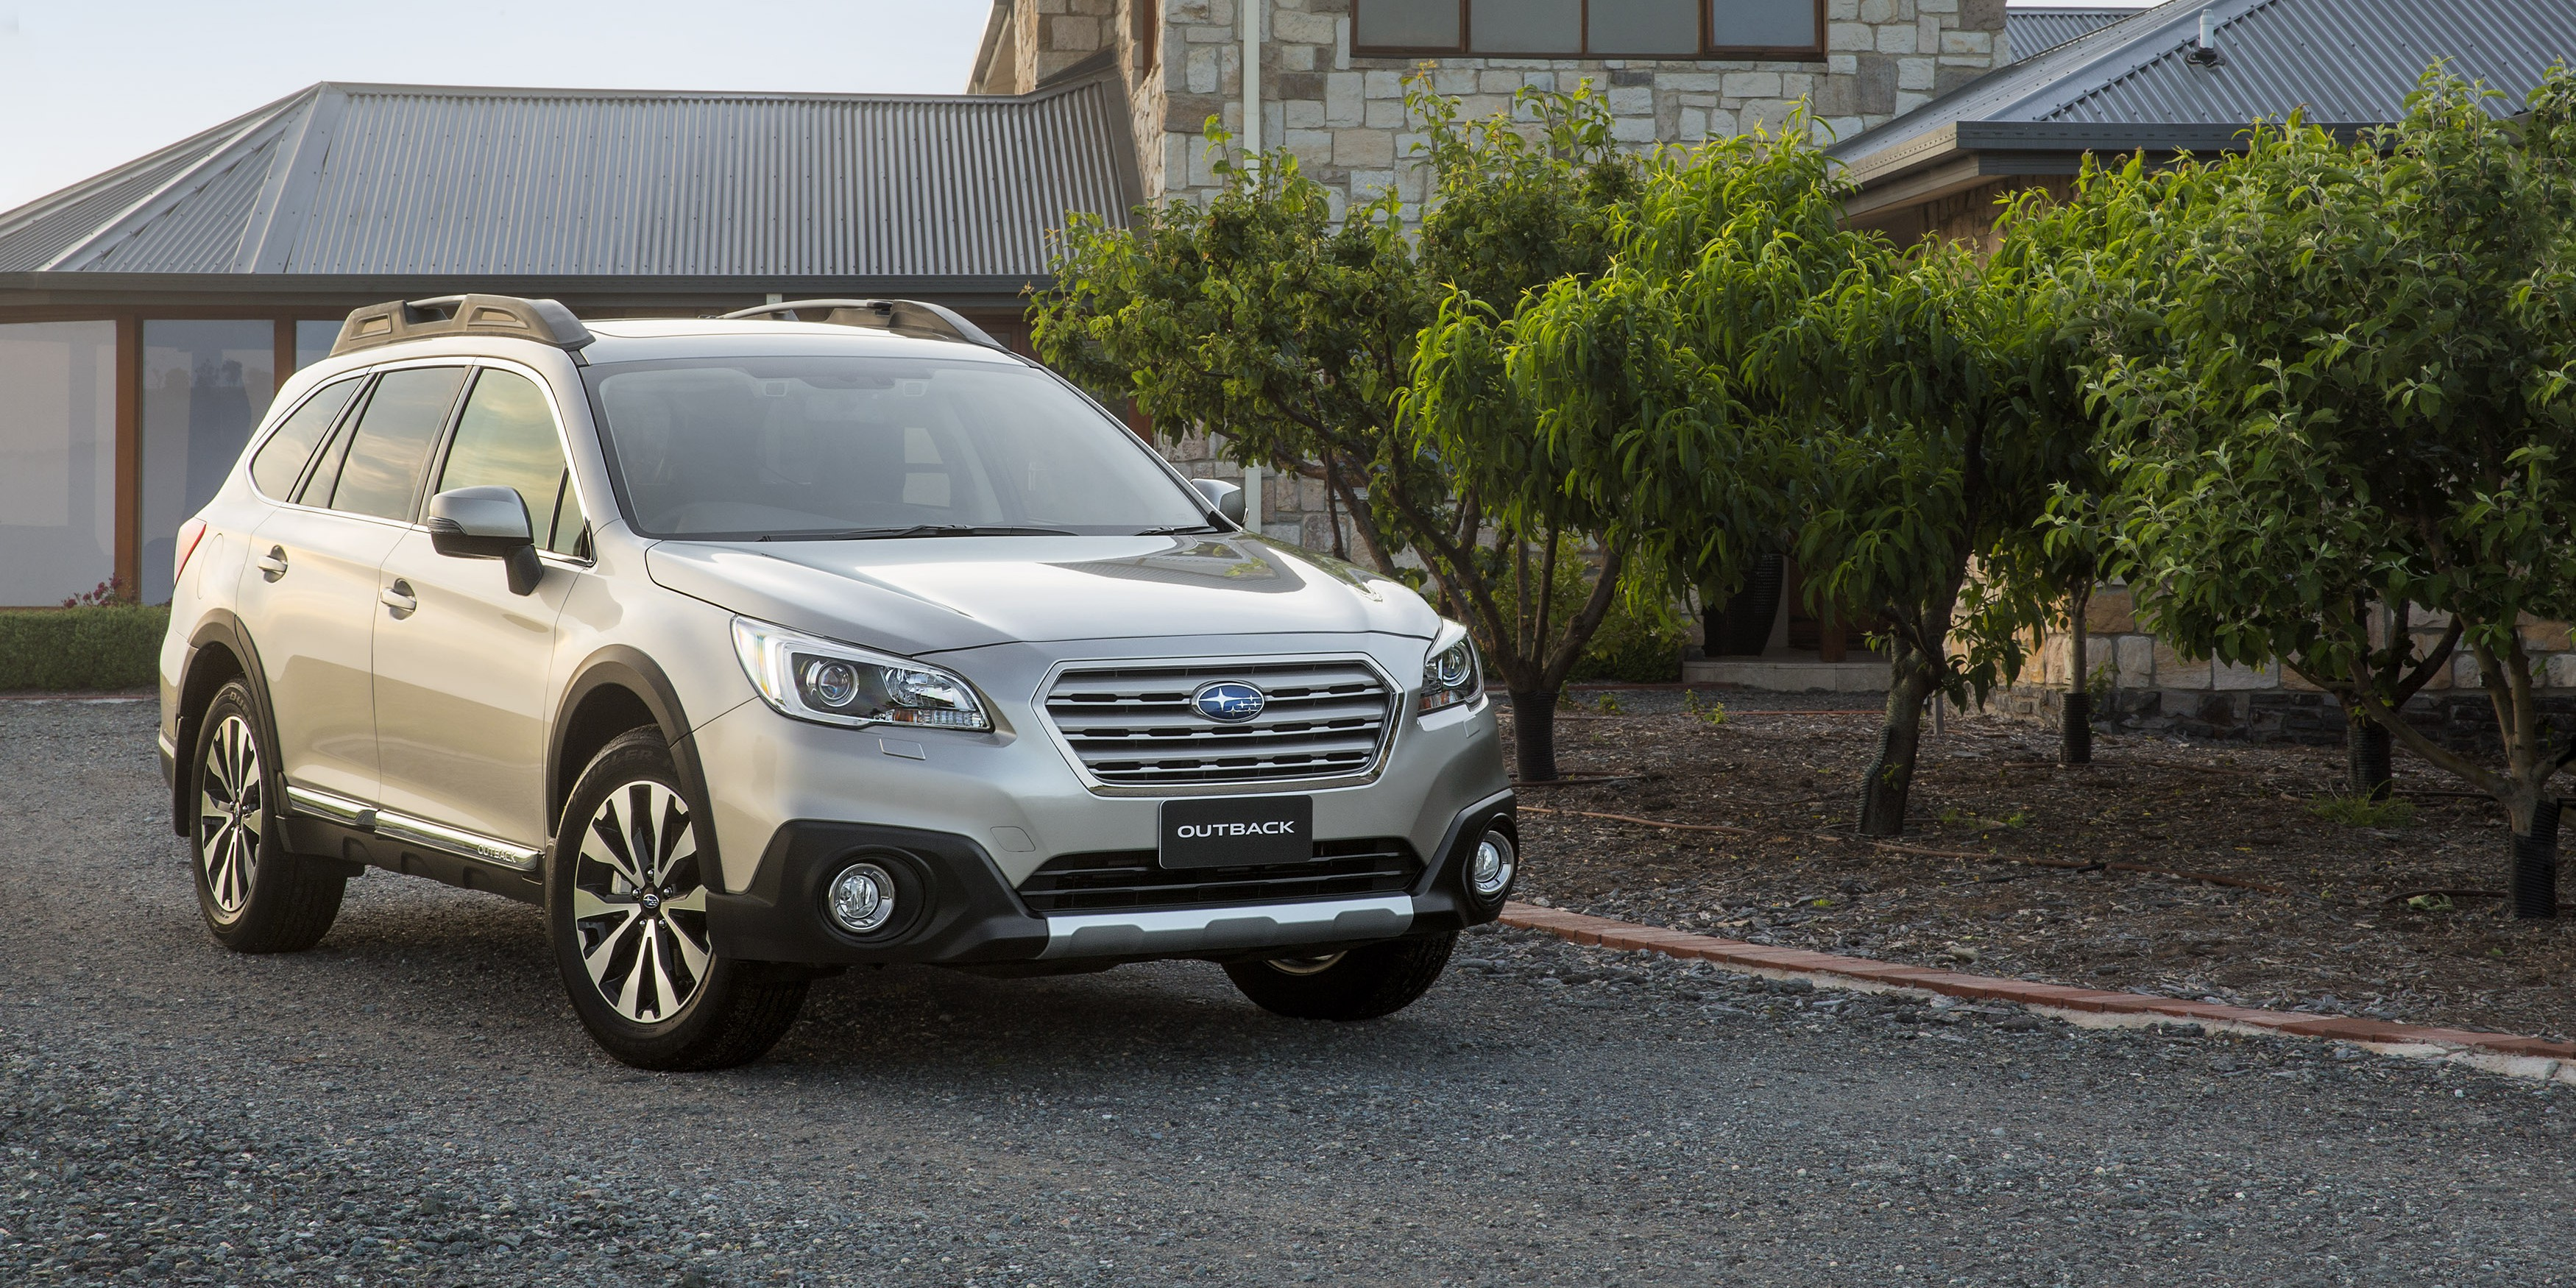 2015 subaru outback pricing drops of up to 10 000 photos caradvice. Black Bedroom Furniture Sets. Home Design Ideas